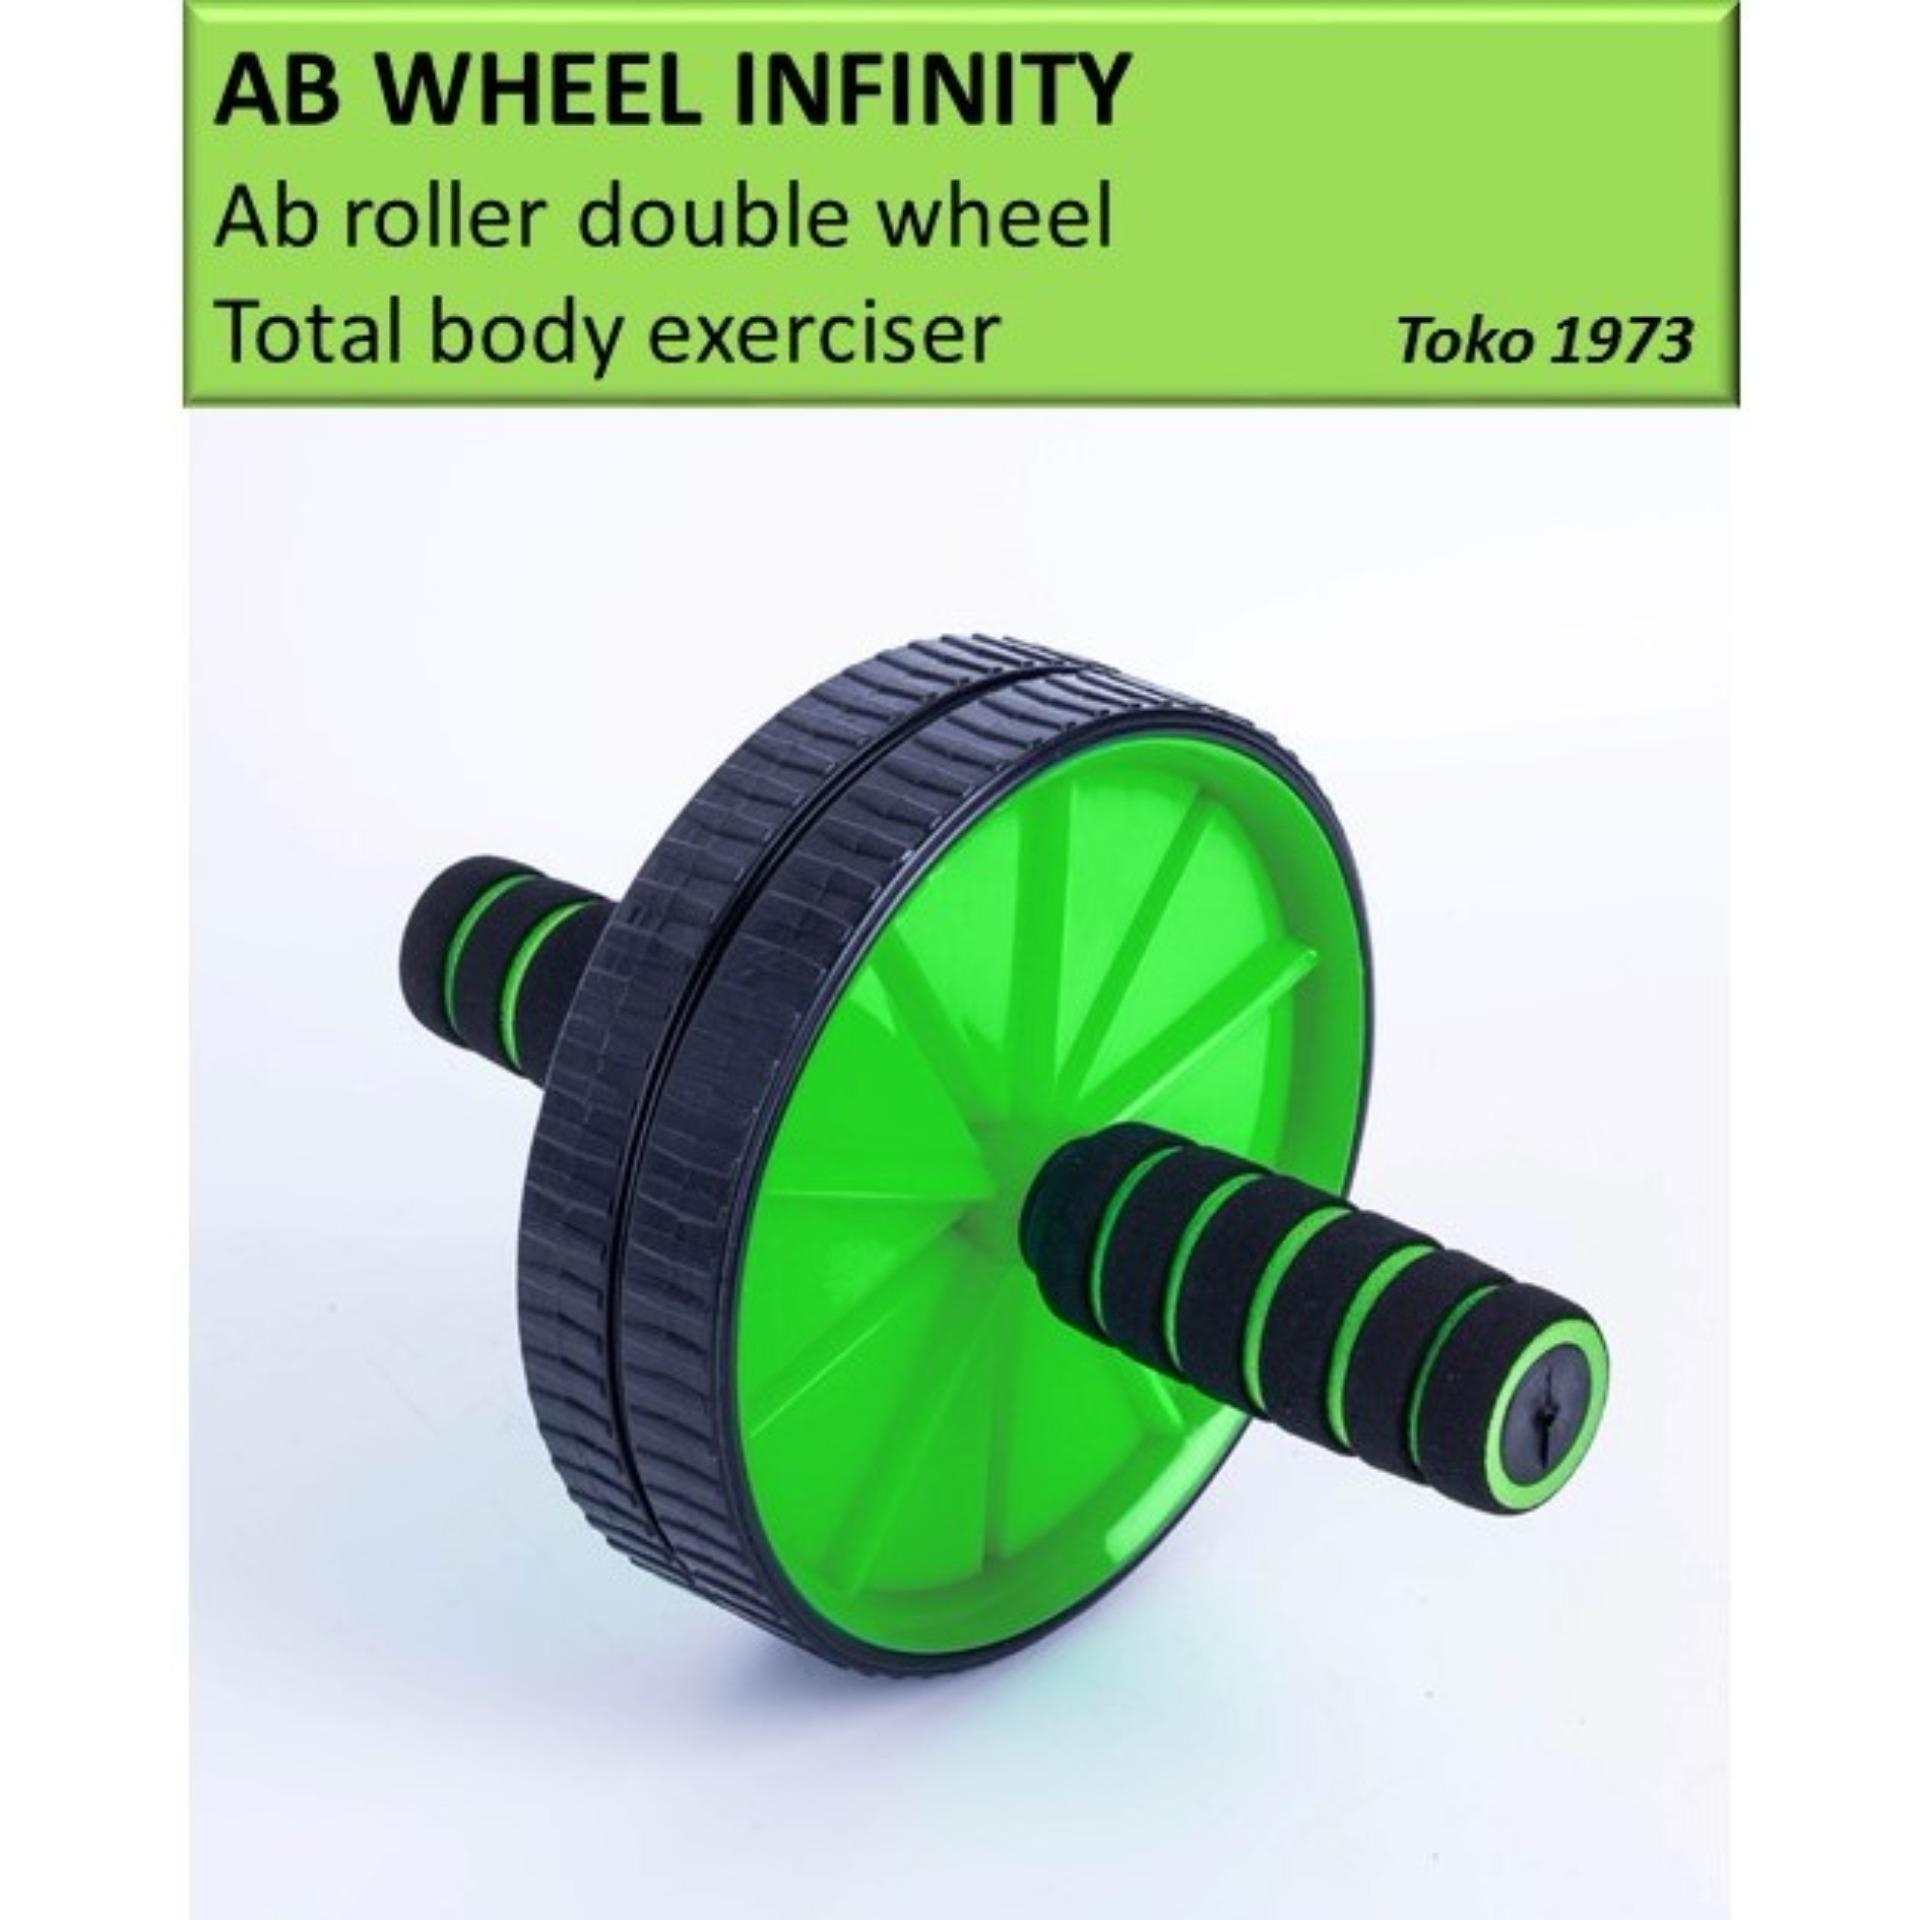 AB WHEEL INFINITY - Ab roller double wheel / Alat sit up / alat gym -